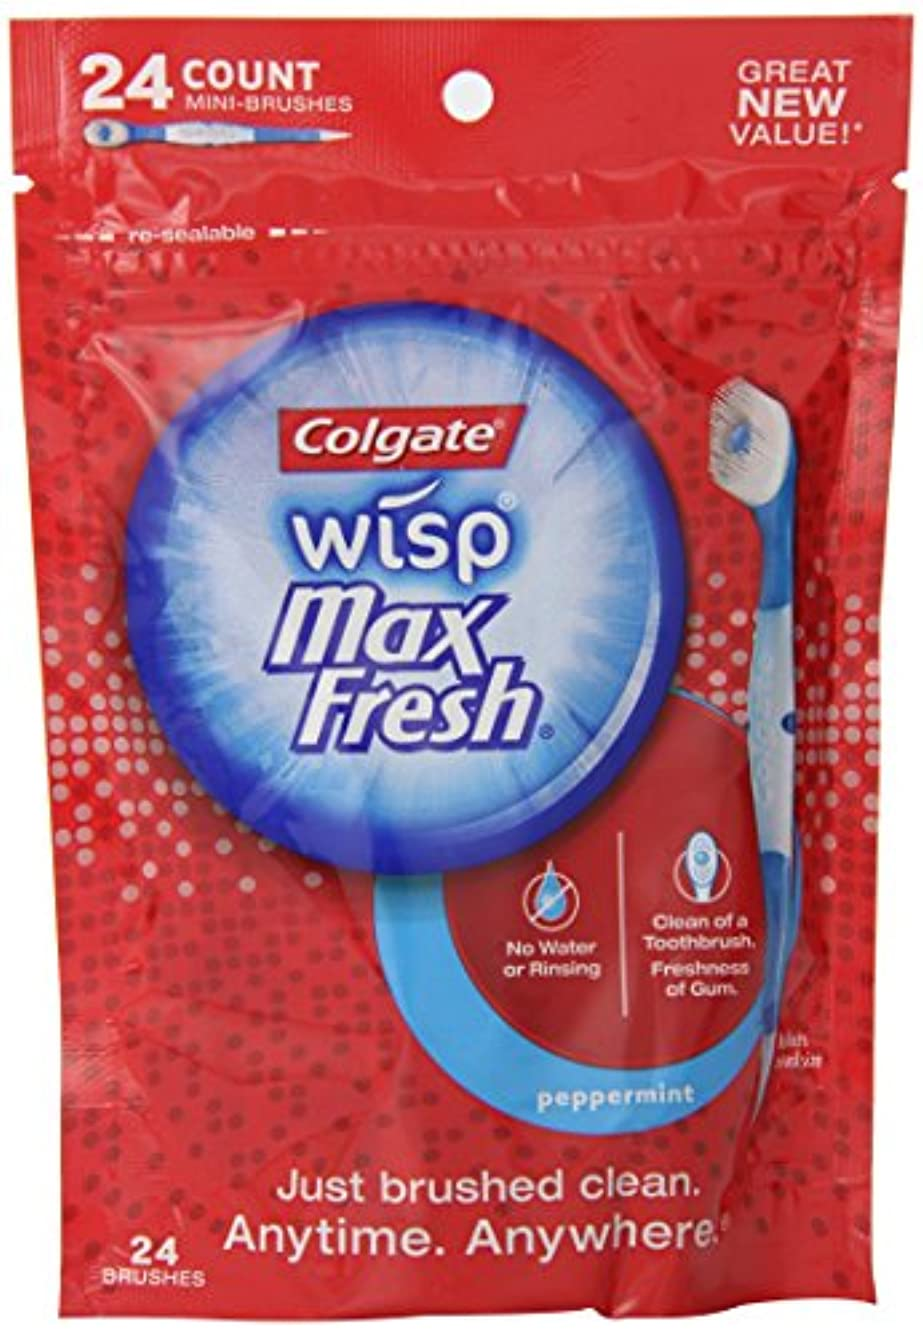 予測する中級法的Colgate Wisp Portable Mini-Brush Max Fresh, Peppermint, 24 Count by Colgate [並行輸入品]